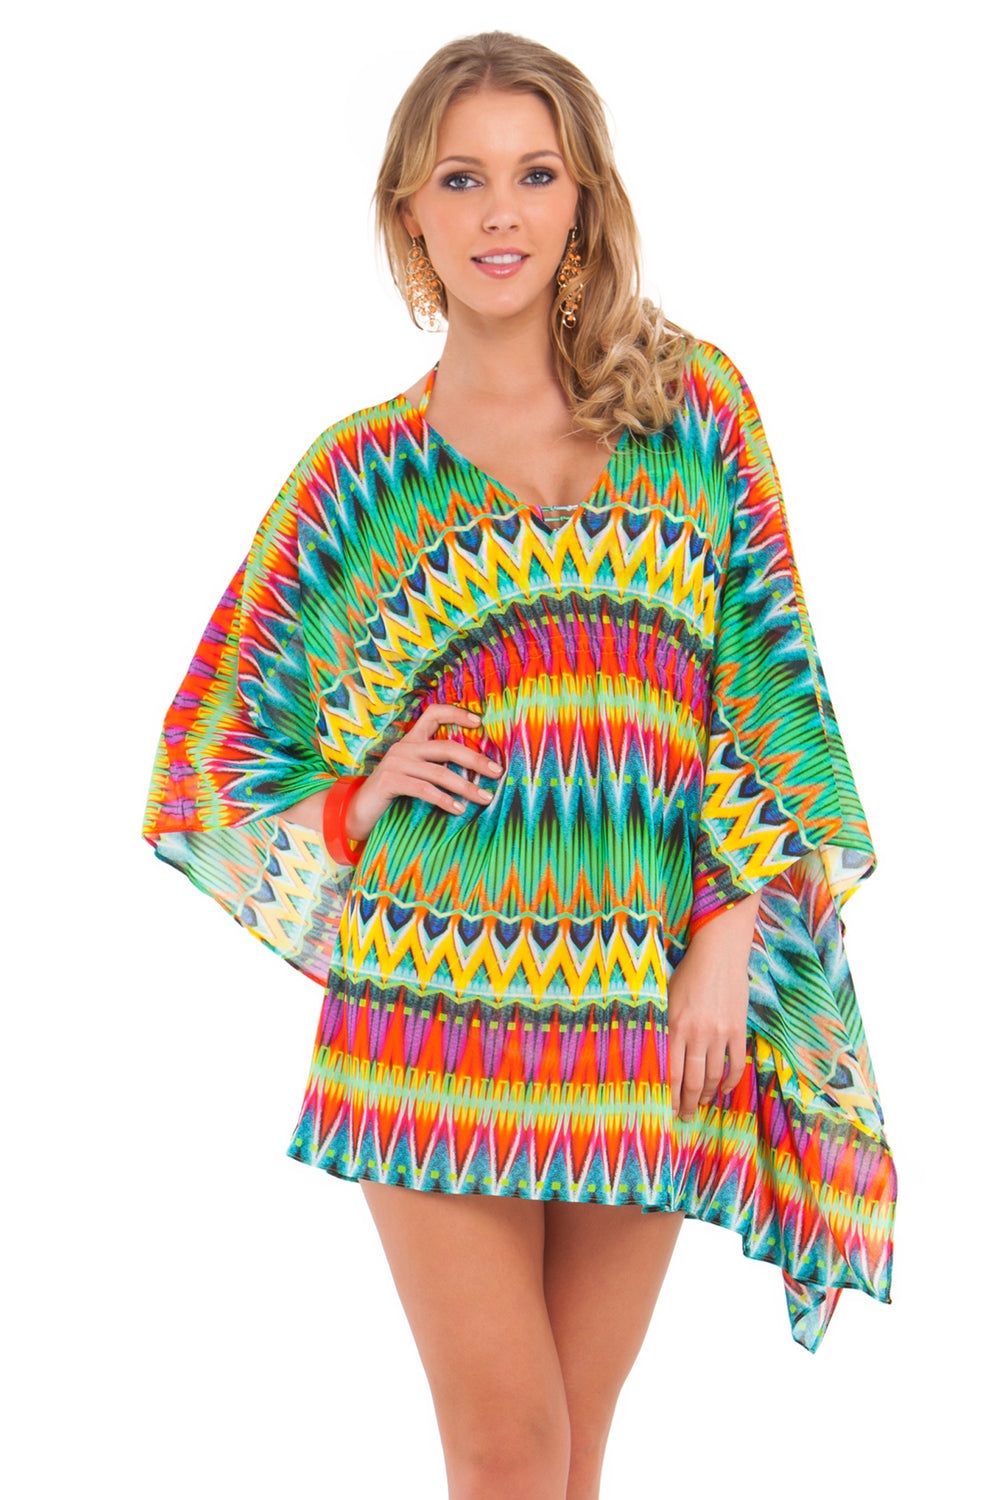 TULUM PARTY - Caftan Dress • Multicolor